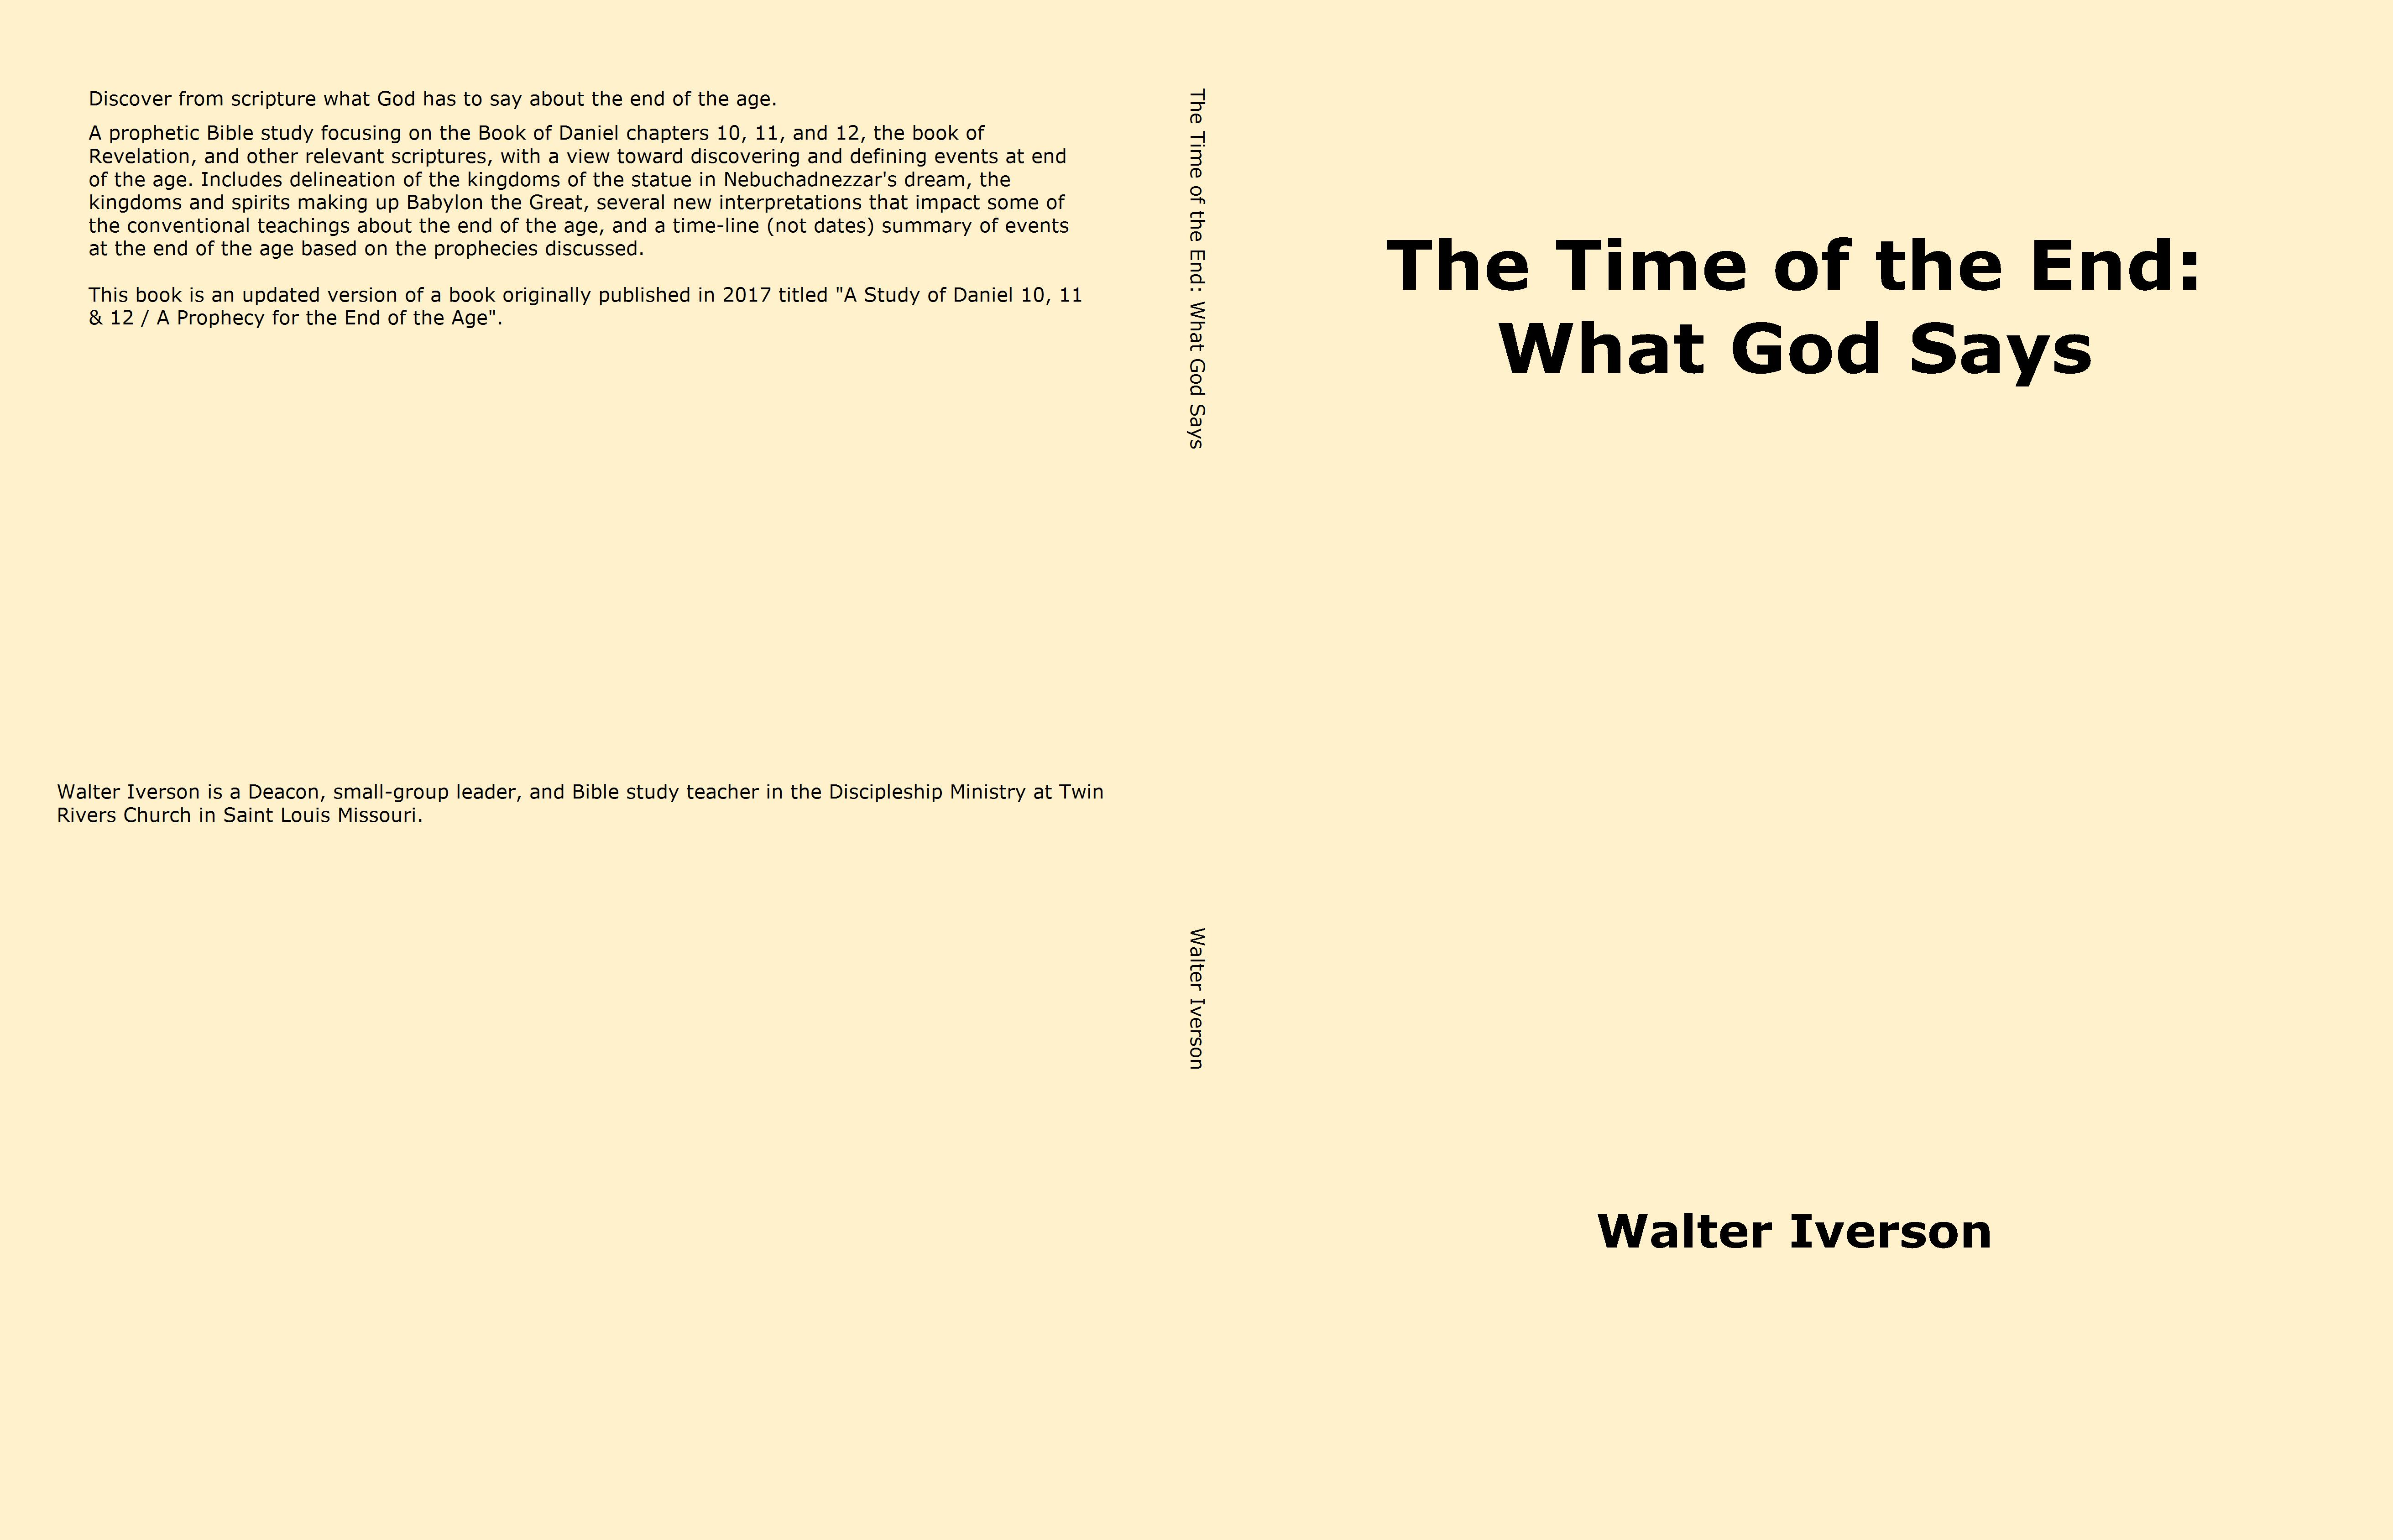 The Time of the End: What God Says cover image